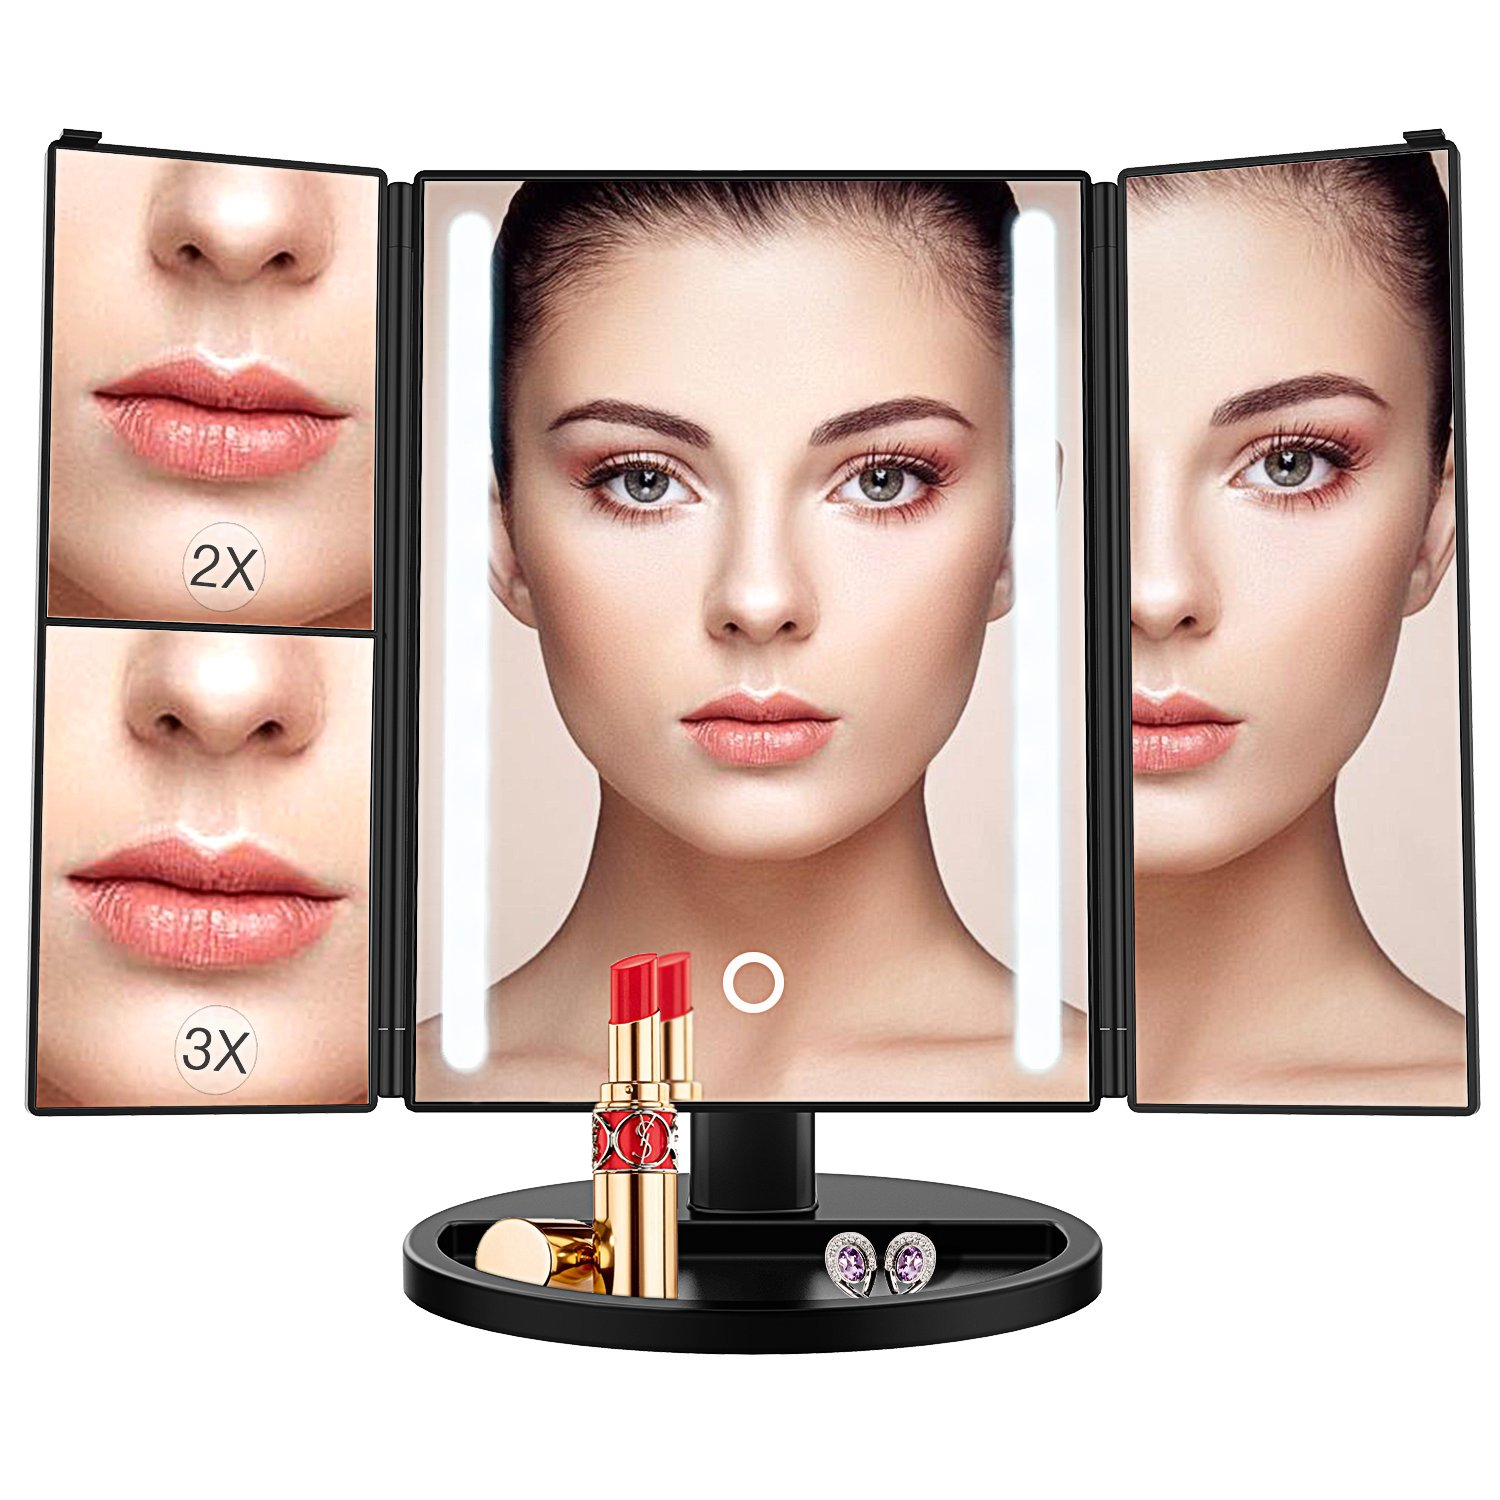 BESTOPE 24 Led Makeup Mirror Larger Vanity Mirror with 3x/2x Magnification,Trifold Lighted Mirror,Touch Screen, 180° Adjustable Rotation,Battery and USB Powered,Countertop Cosmetic Mirror (Black) 180° Adjustable Rotation BESTOPE CA